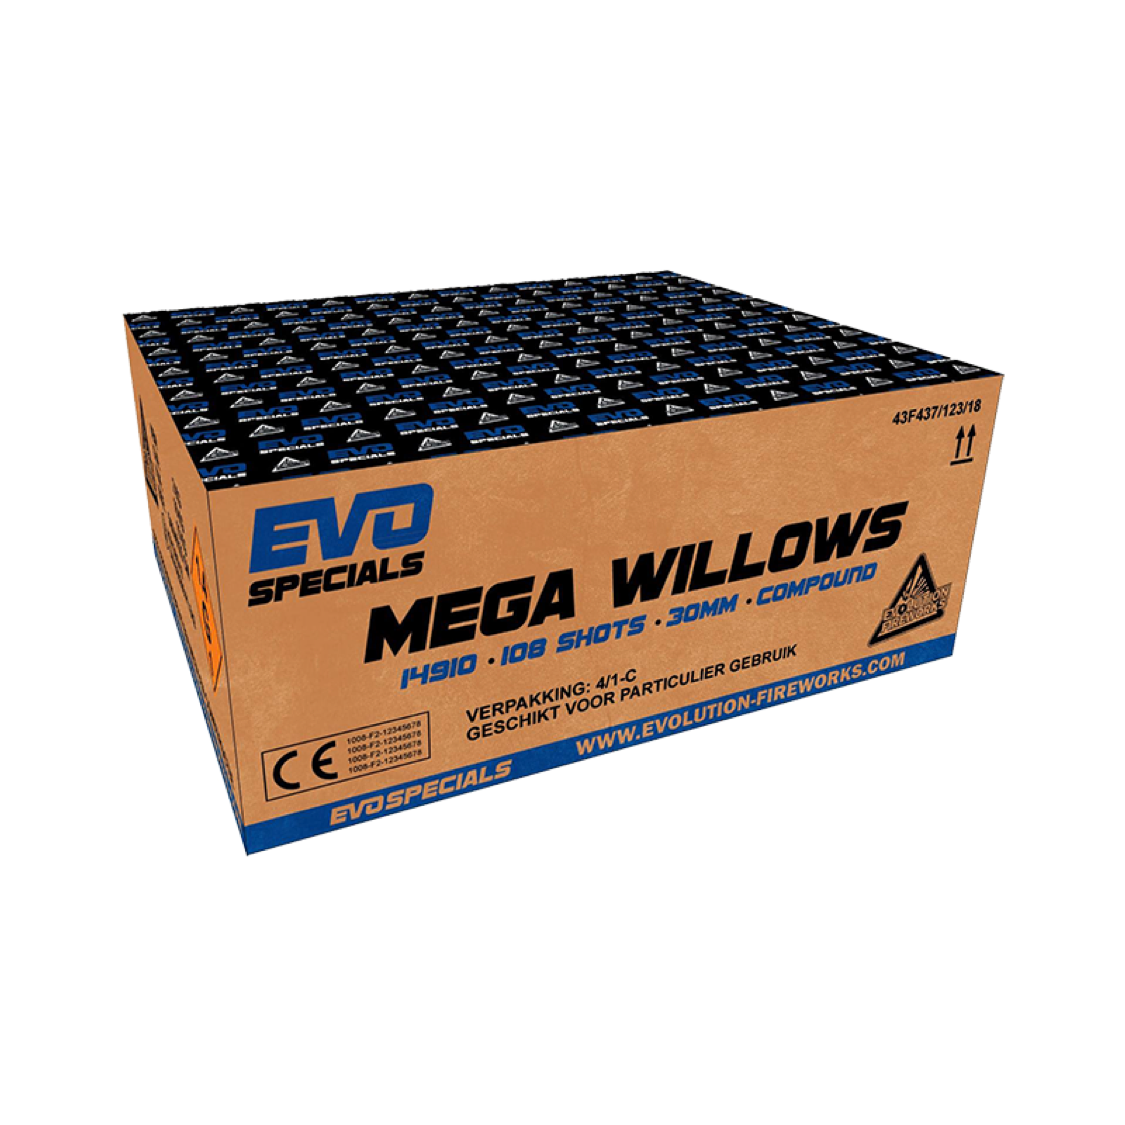 ART. 14910 MEGA WILLOWS, 108 SHOTS